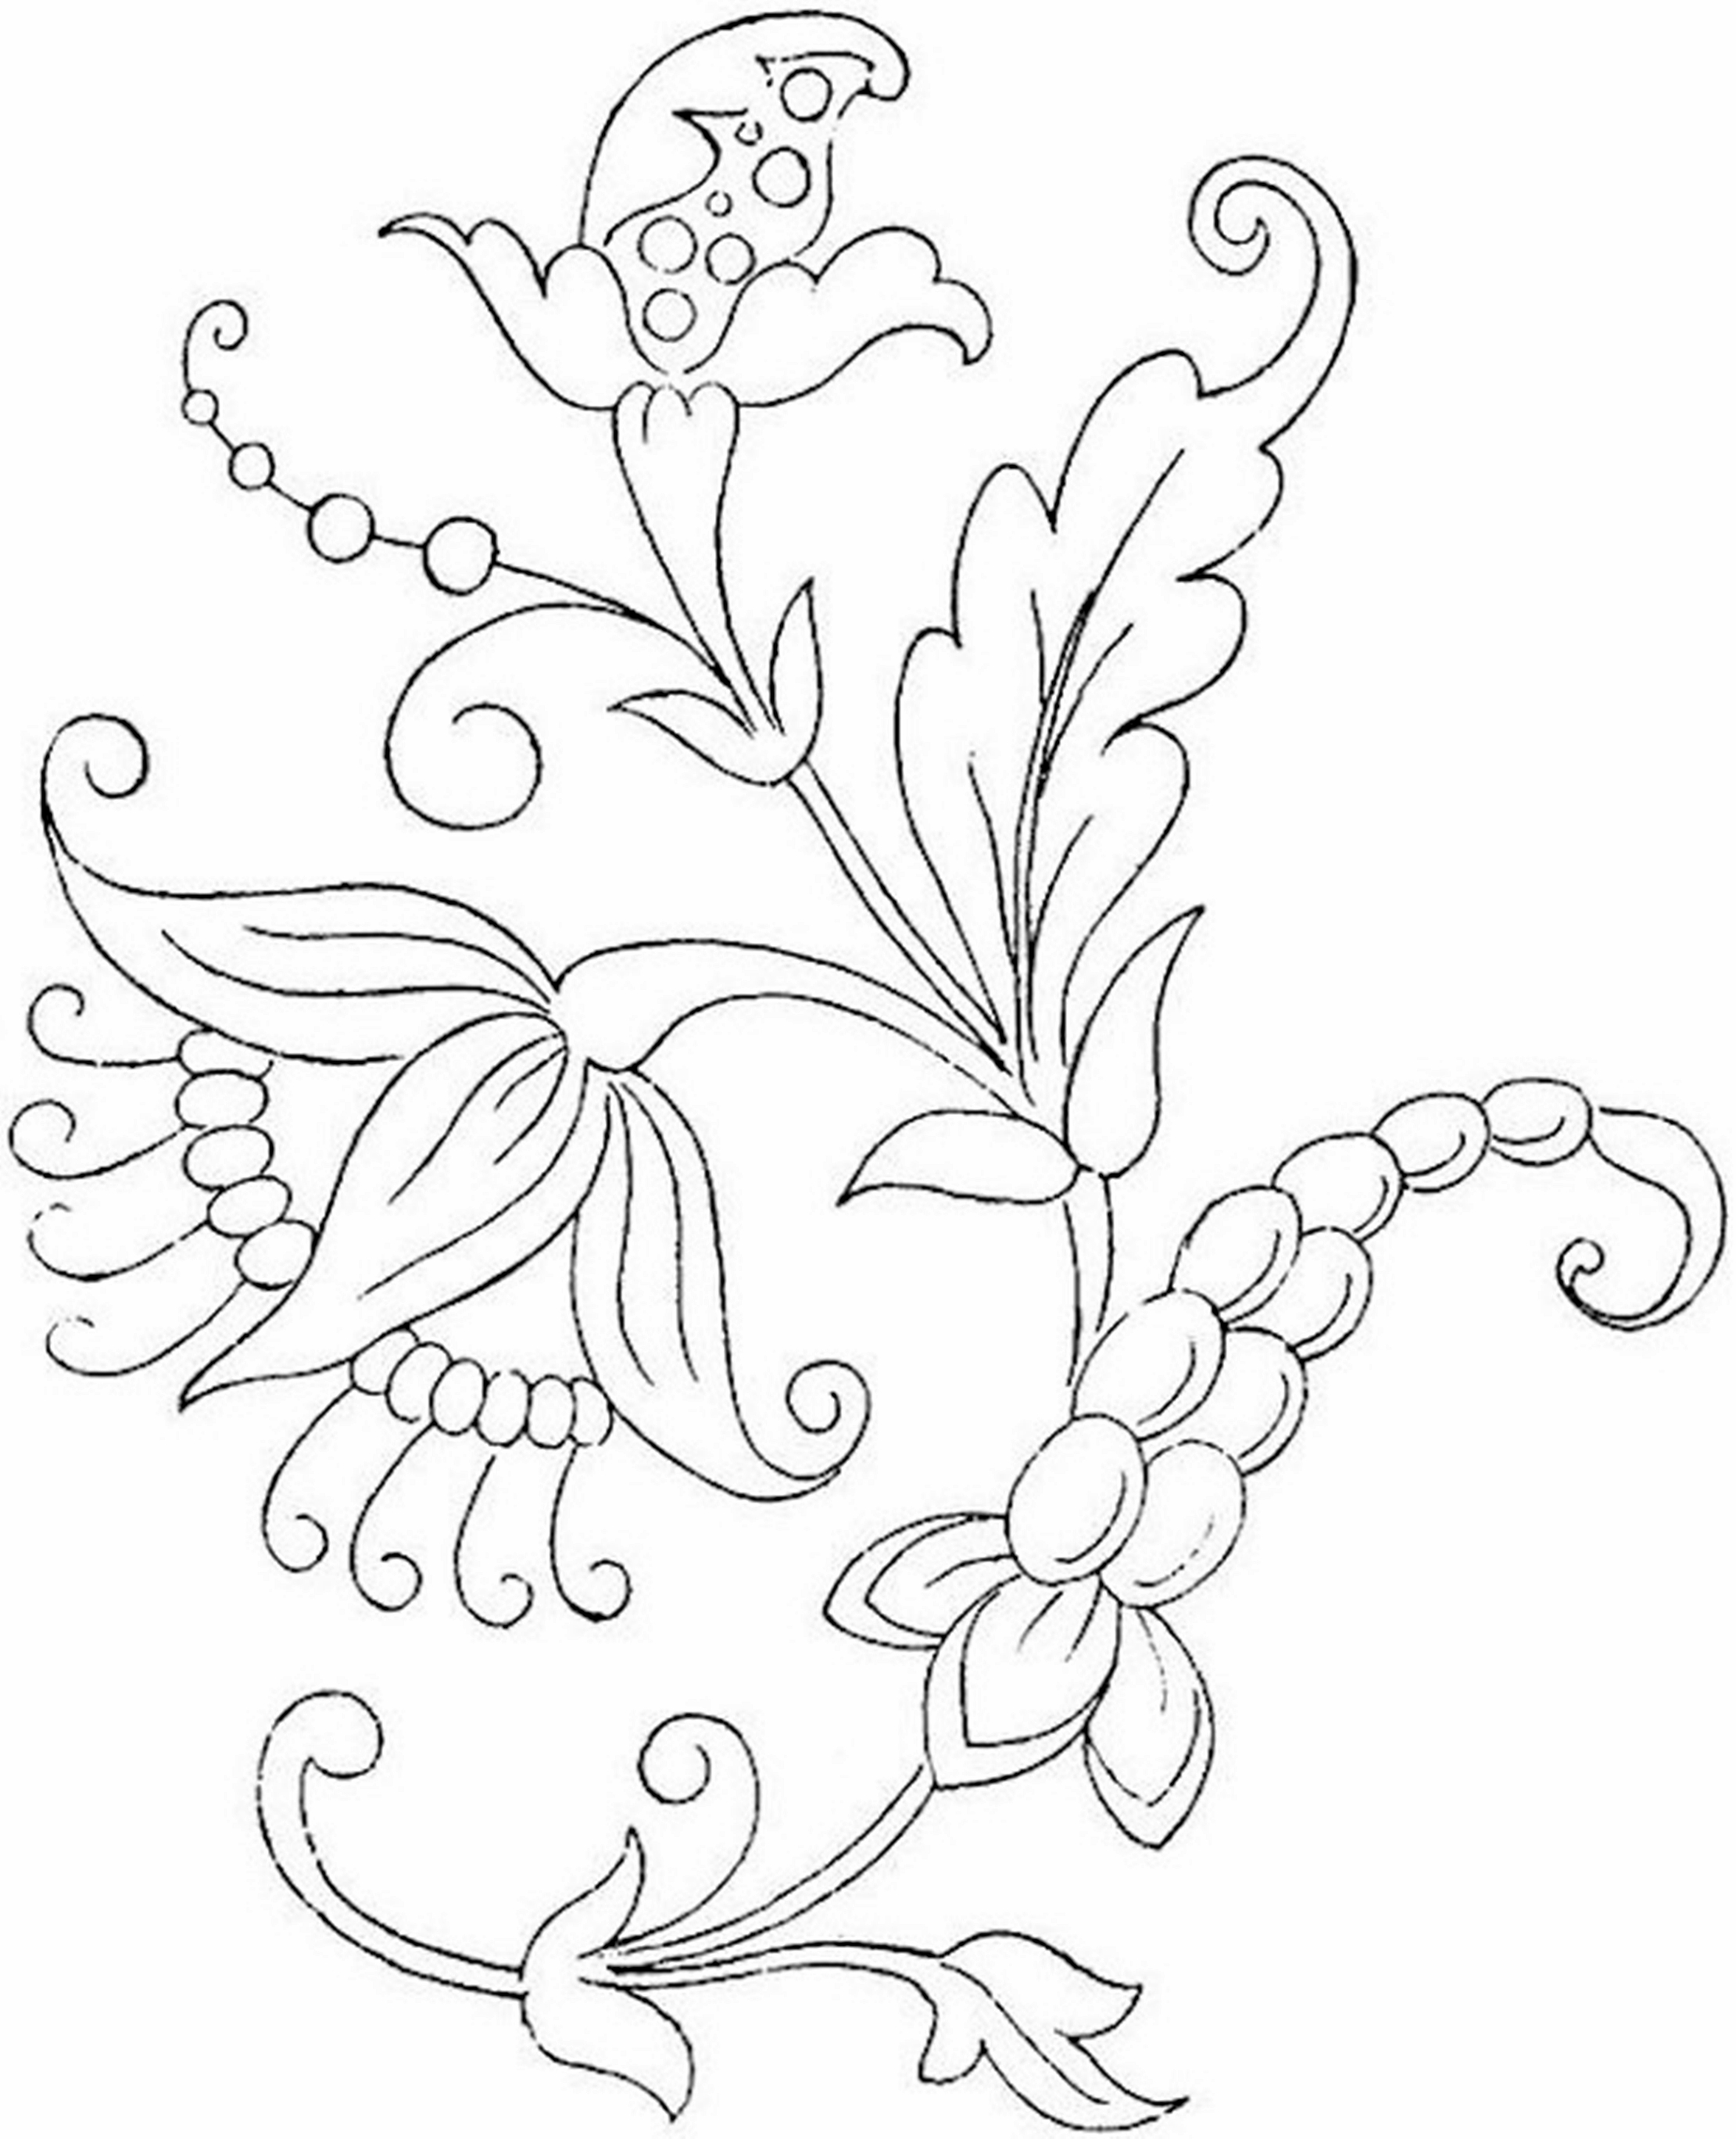 flowers coloring pages printable bouquet of flowers coloring pages for childrens printable flowers printable pages coloring